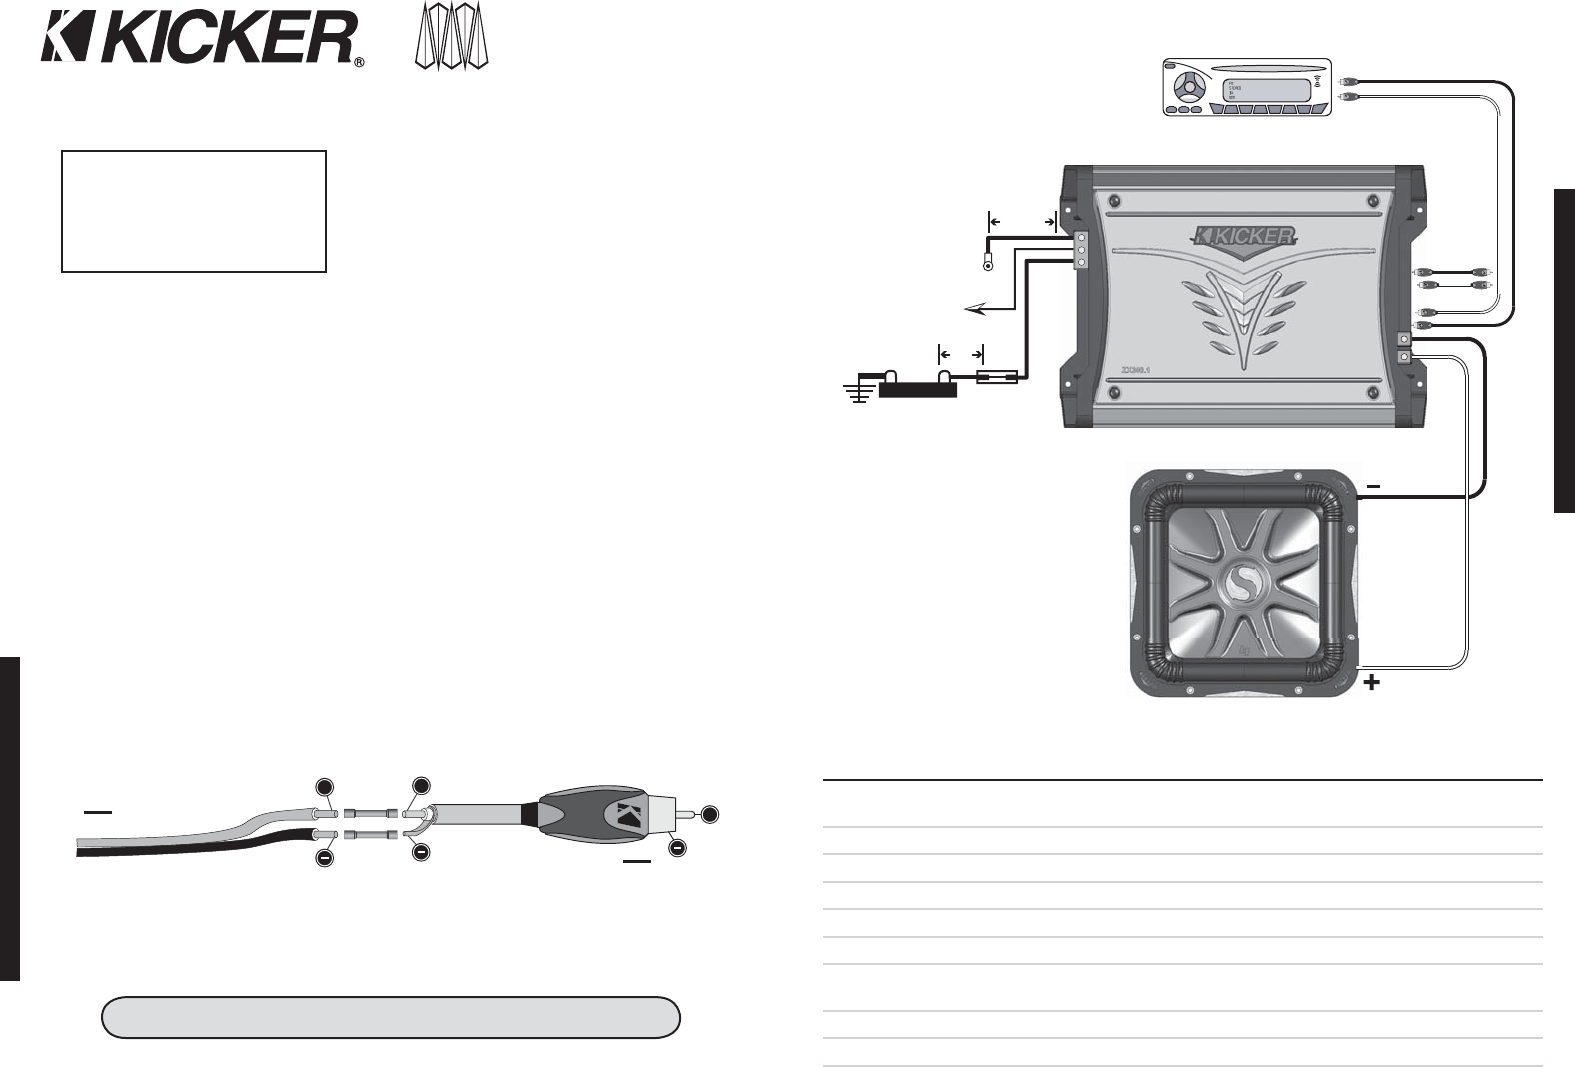 cbb5068e c461 cf14 b527 a350f3c723e2 bg2 page 2 of kicker stereo amplifier zx300 1 user guide kicker l5 12 wiring diagram at virtualis.co